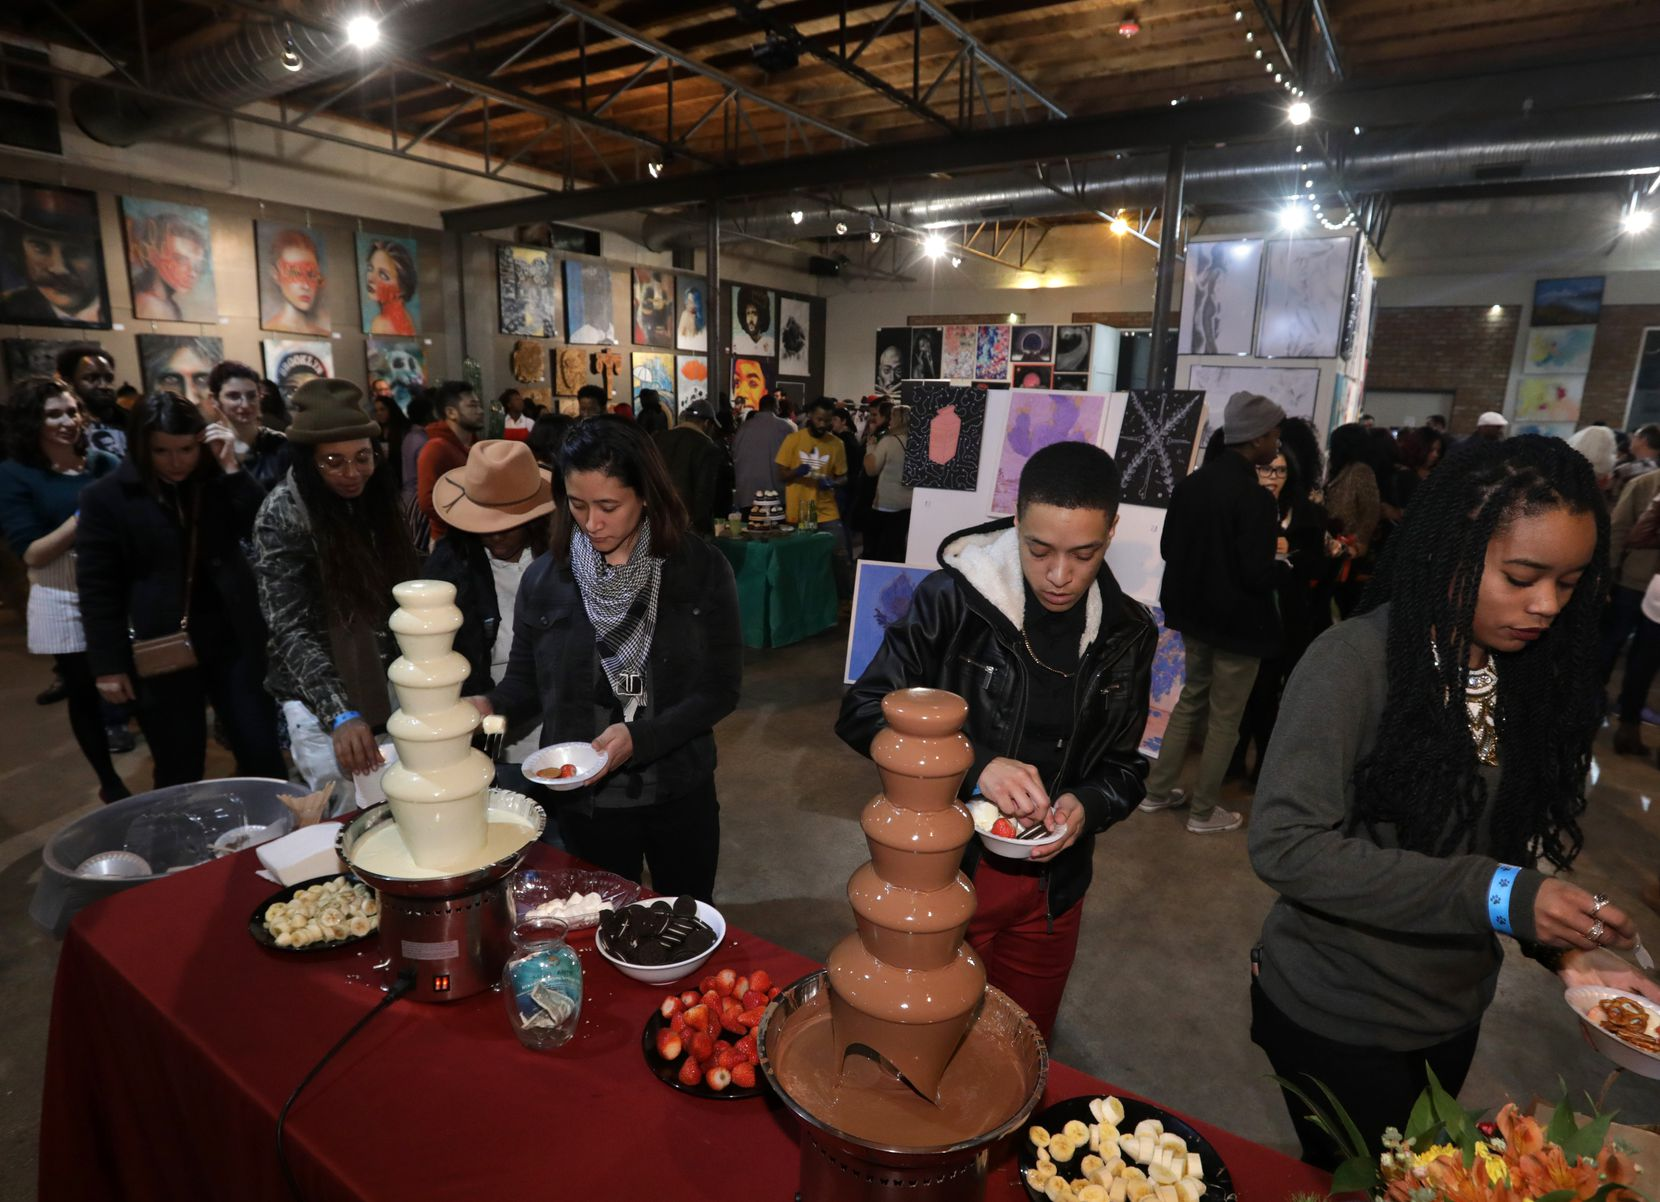 Expect fondue fountains, art (including live body painting), music and dance at the Chocolate and Art Show, an underground event from Los Angeles.